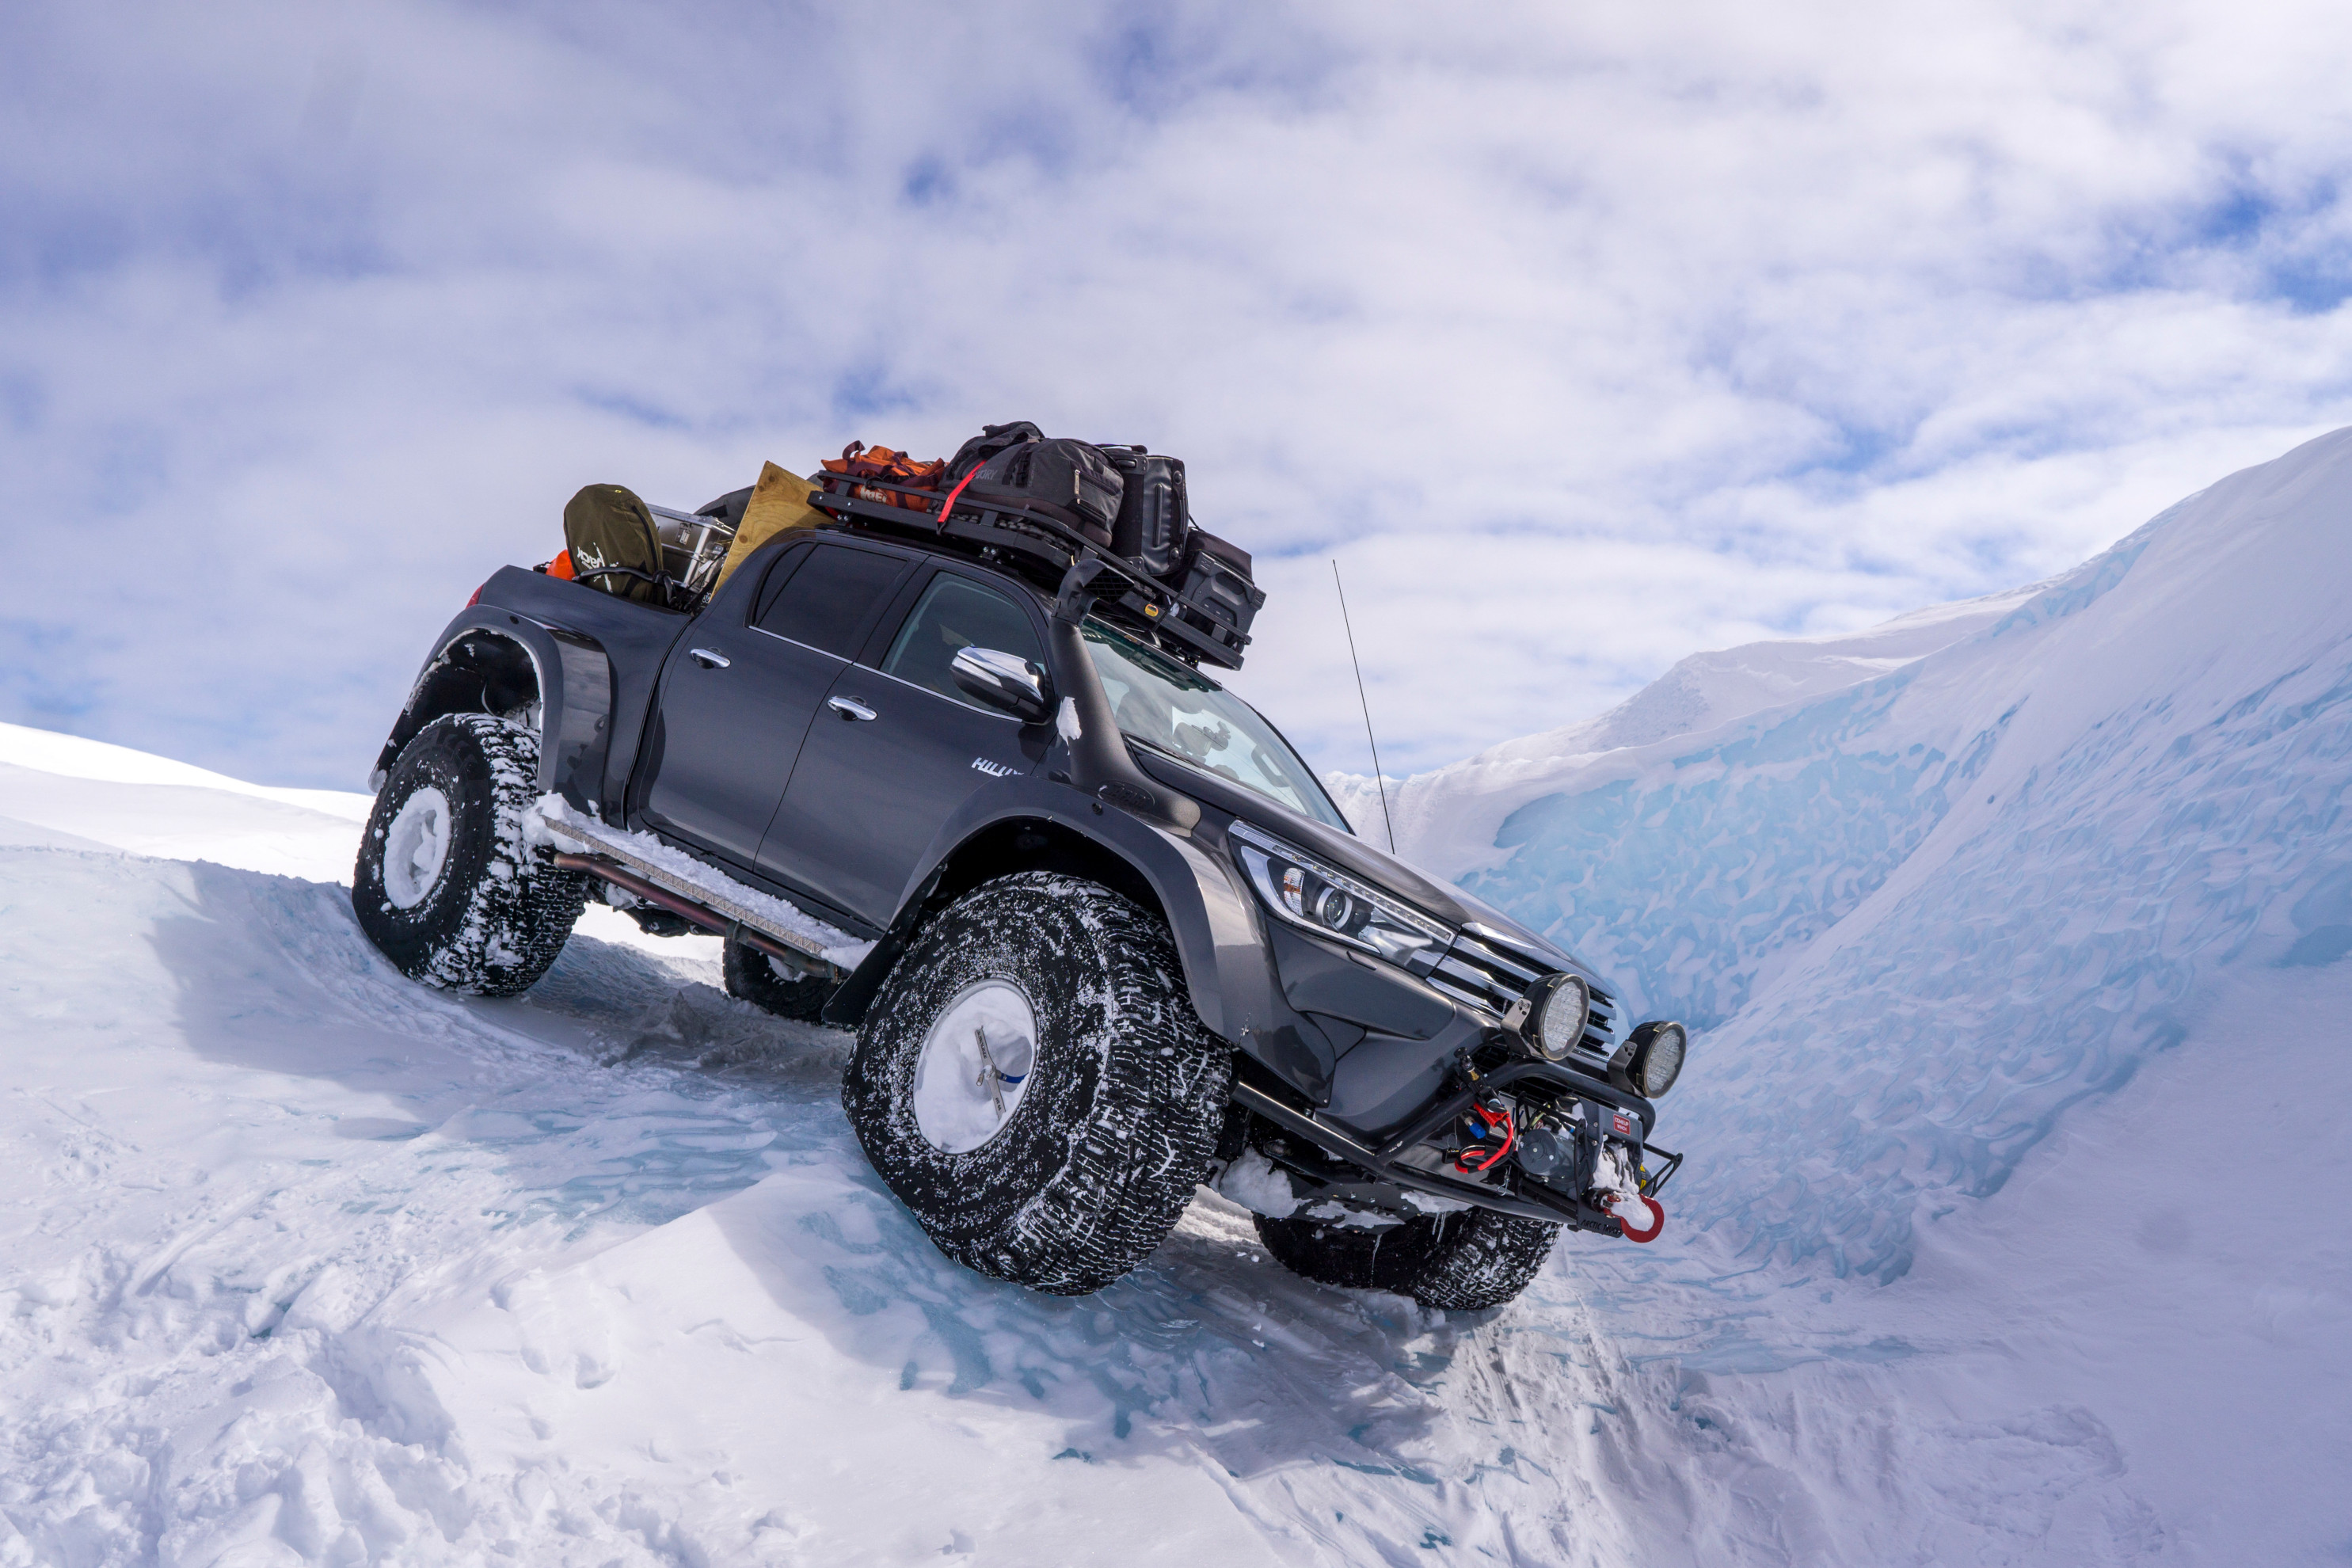 Expeditions7 cross glacier on Nokian Hakkapeliitta tyres